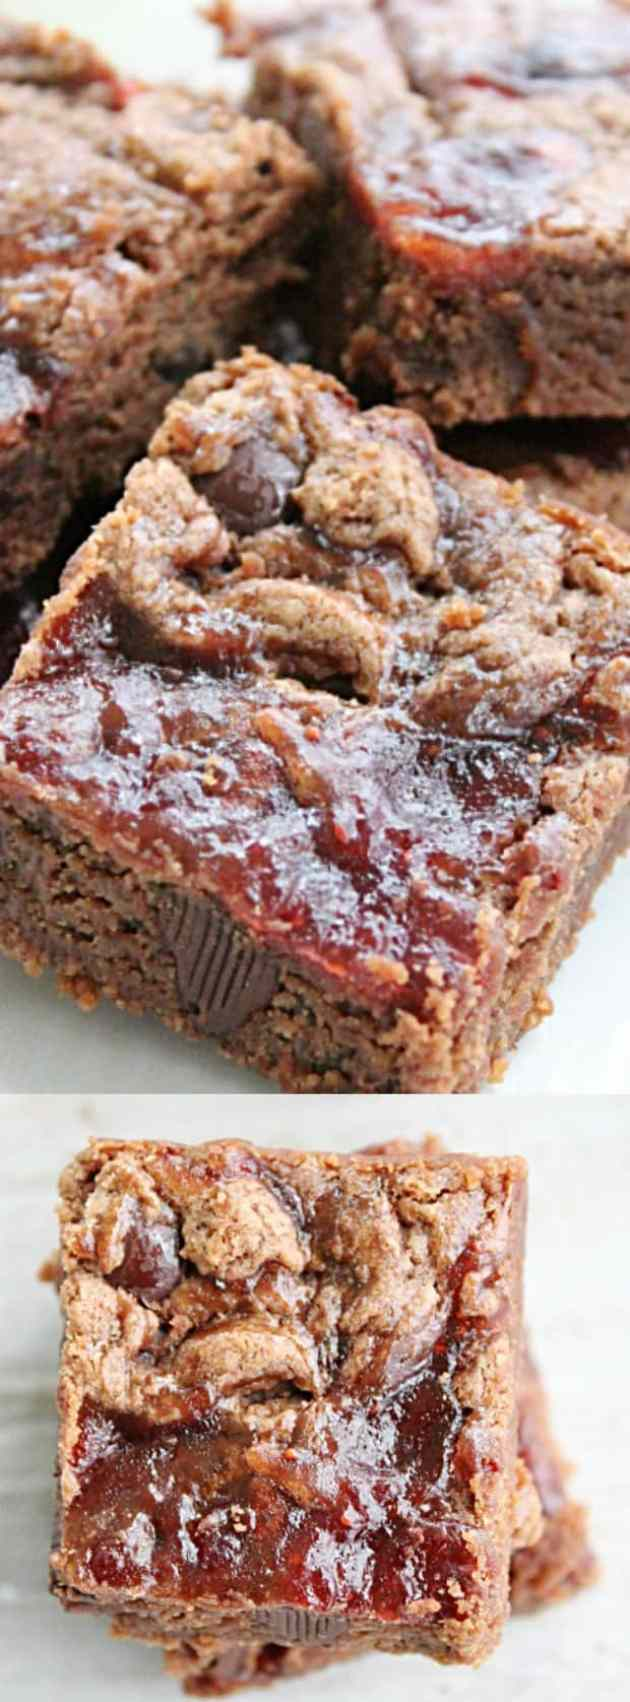 Peanut Butter And Jelly Brownies Longpin